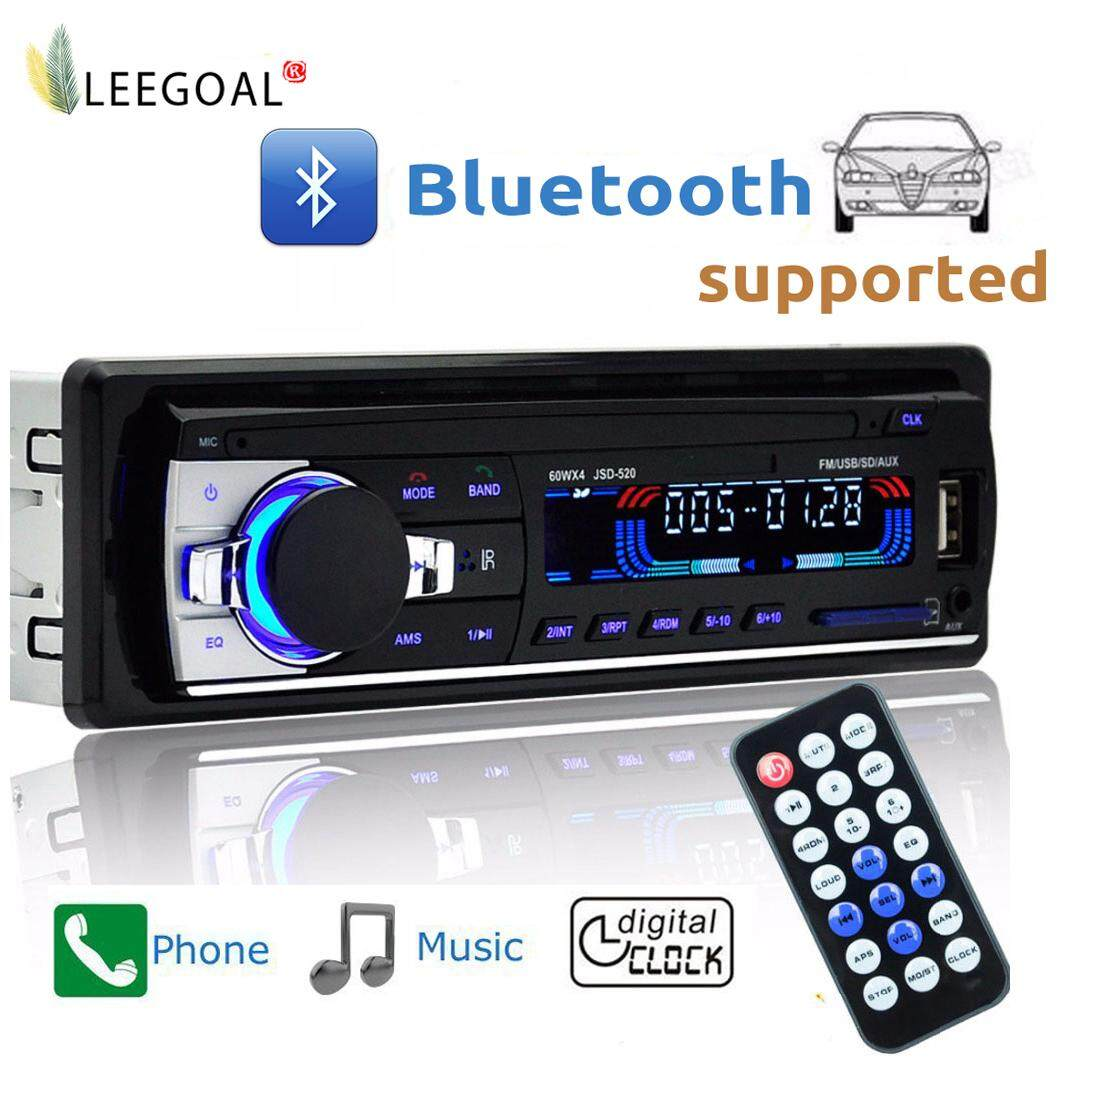 Car Stereo Receivers Buy At Best Price In Jvc Wiring Harness Power Plug Leegoal Wire Less Bluetooth Audio Dash Mp3 Player Support Aux